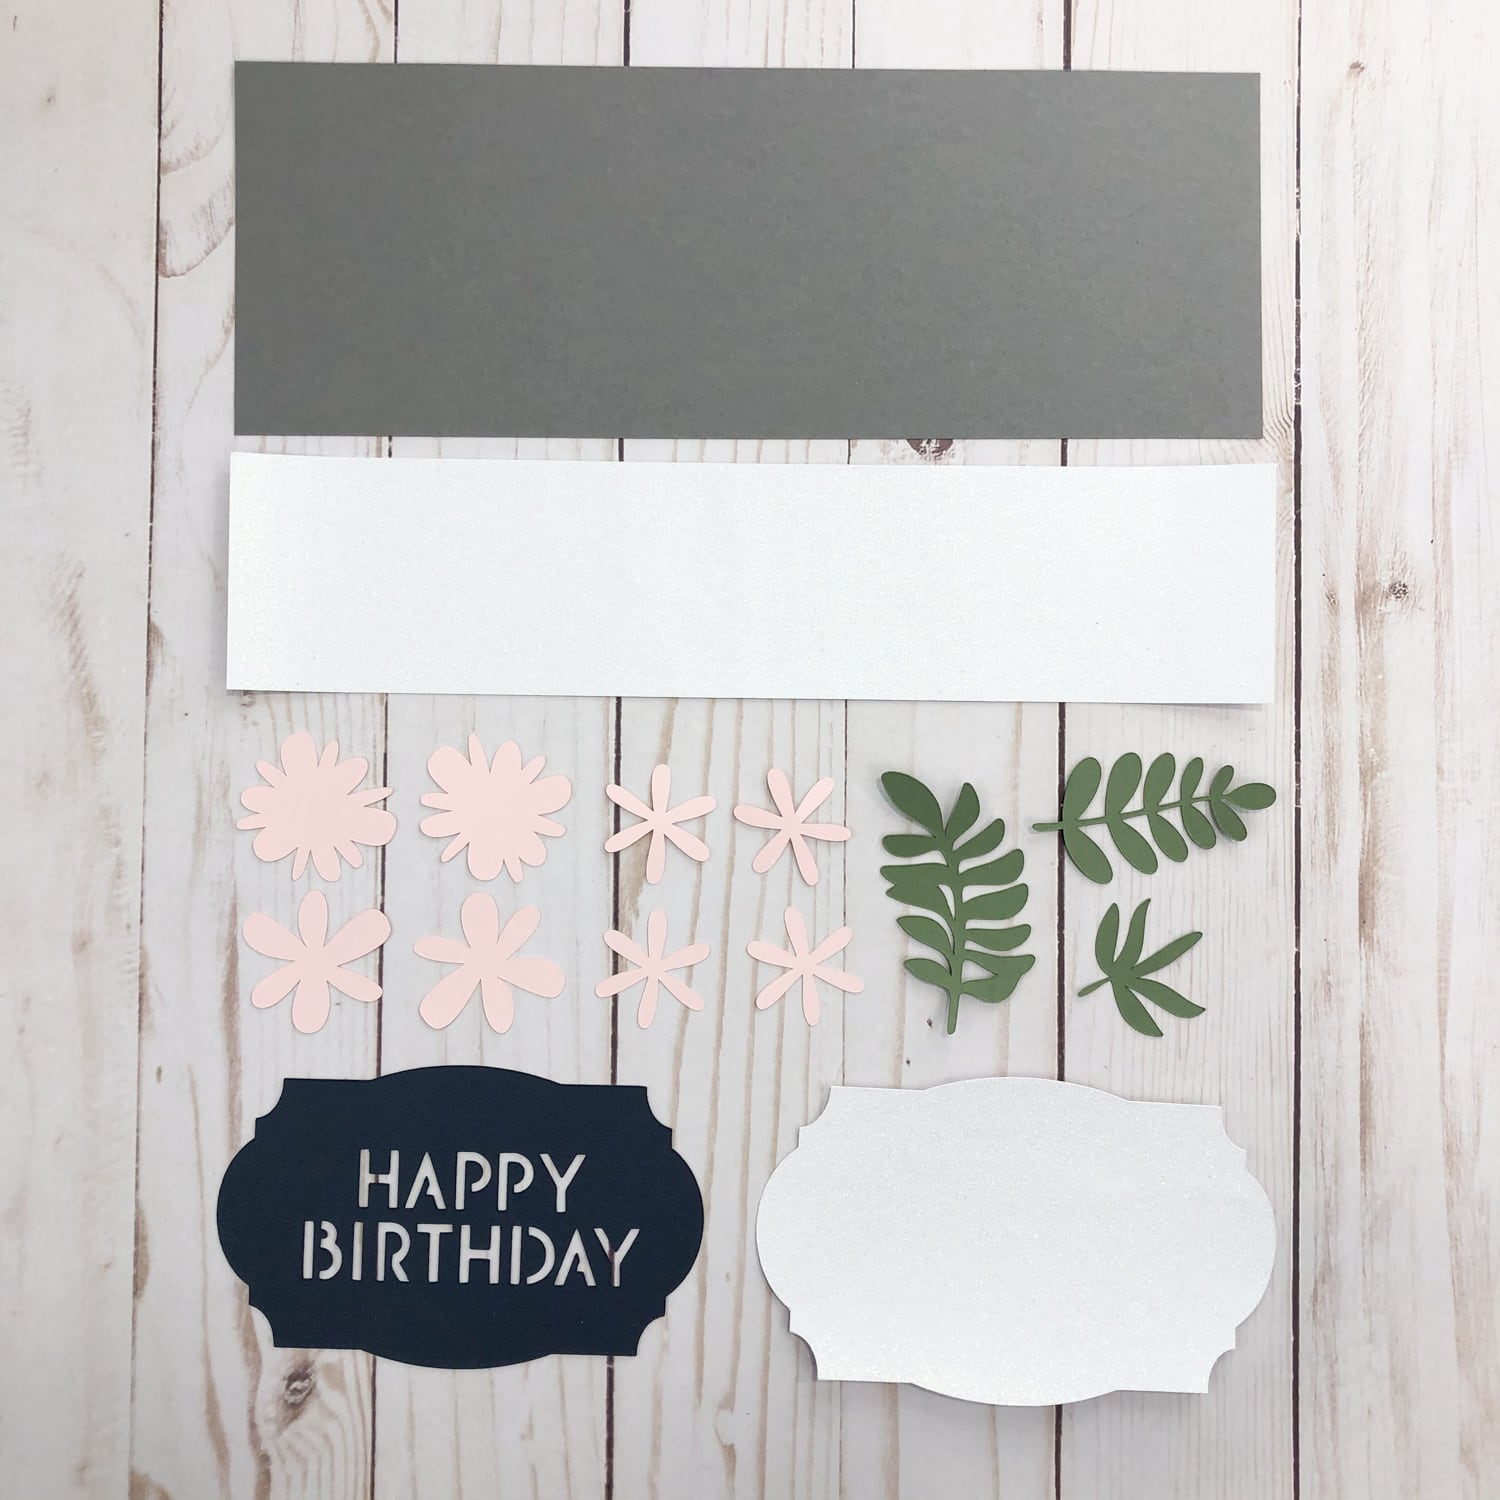 die cut pieces for birthday gift wrapper